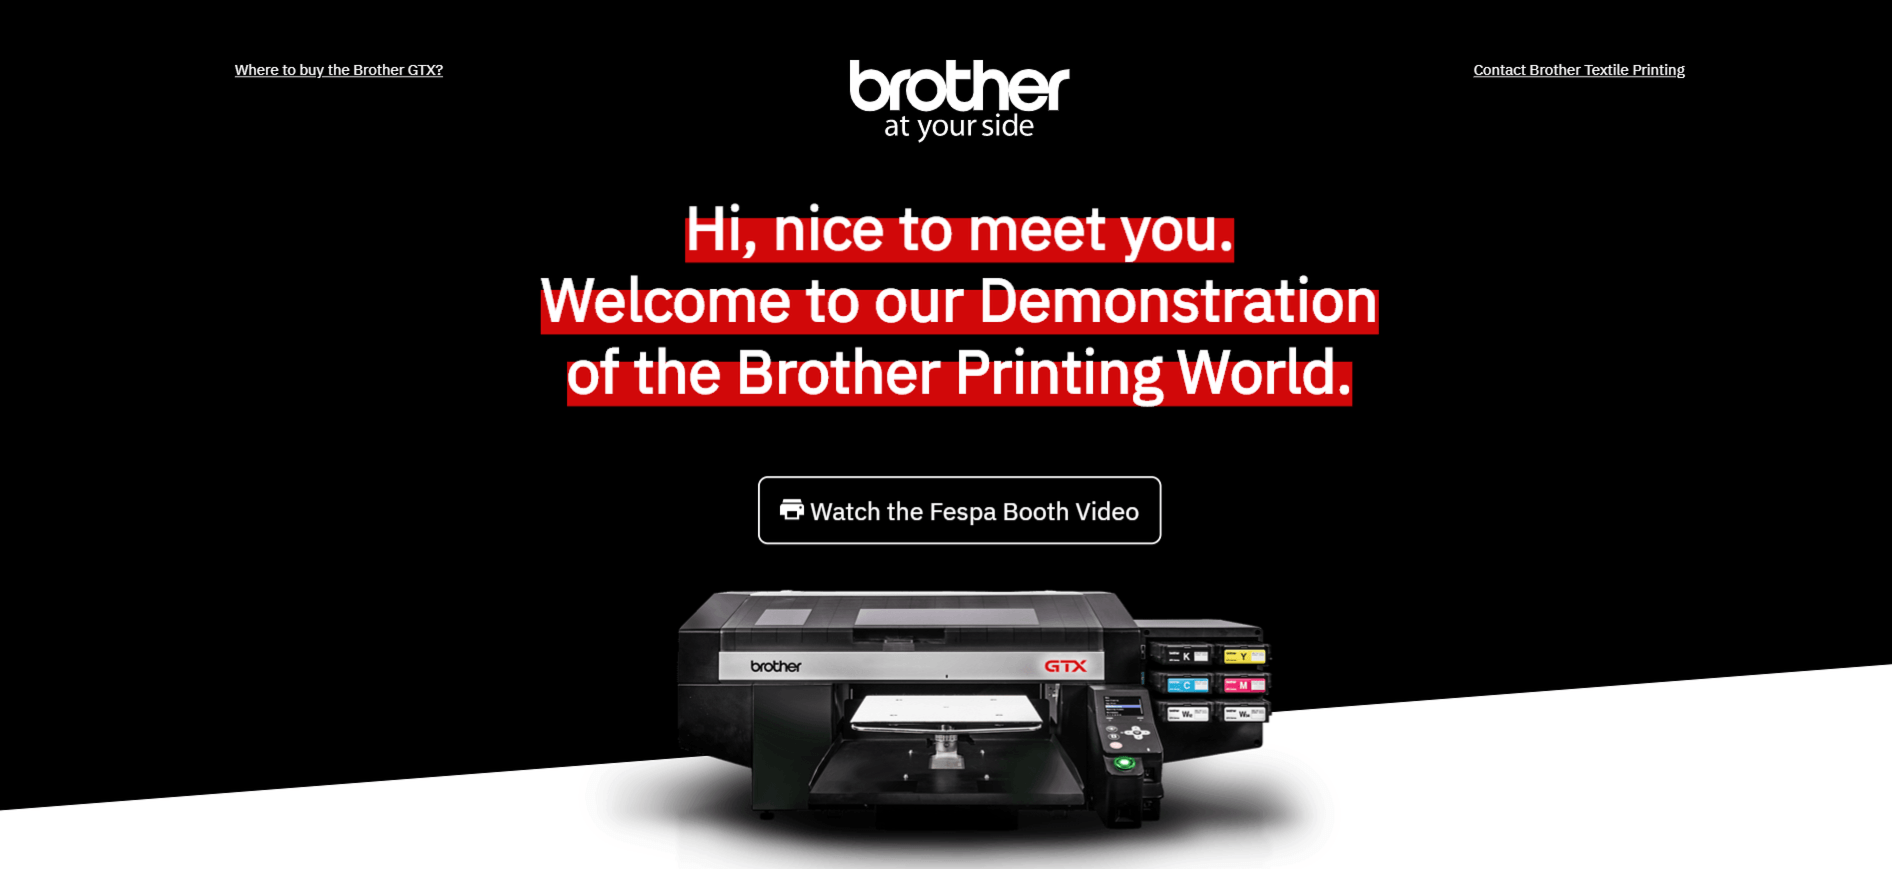 Visit our FESPA exhibition stand virtually.